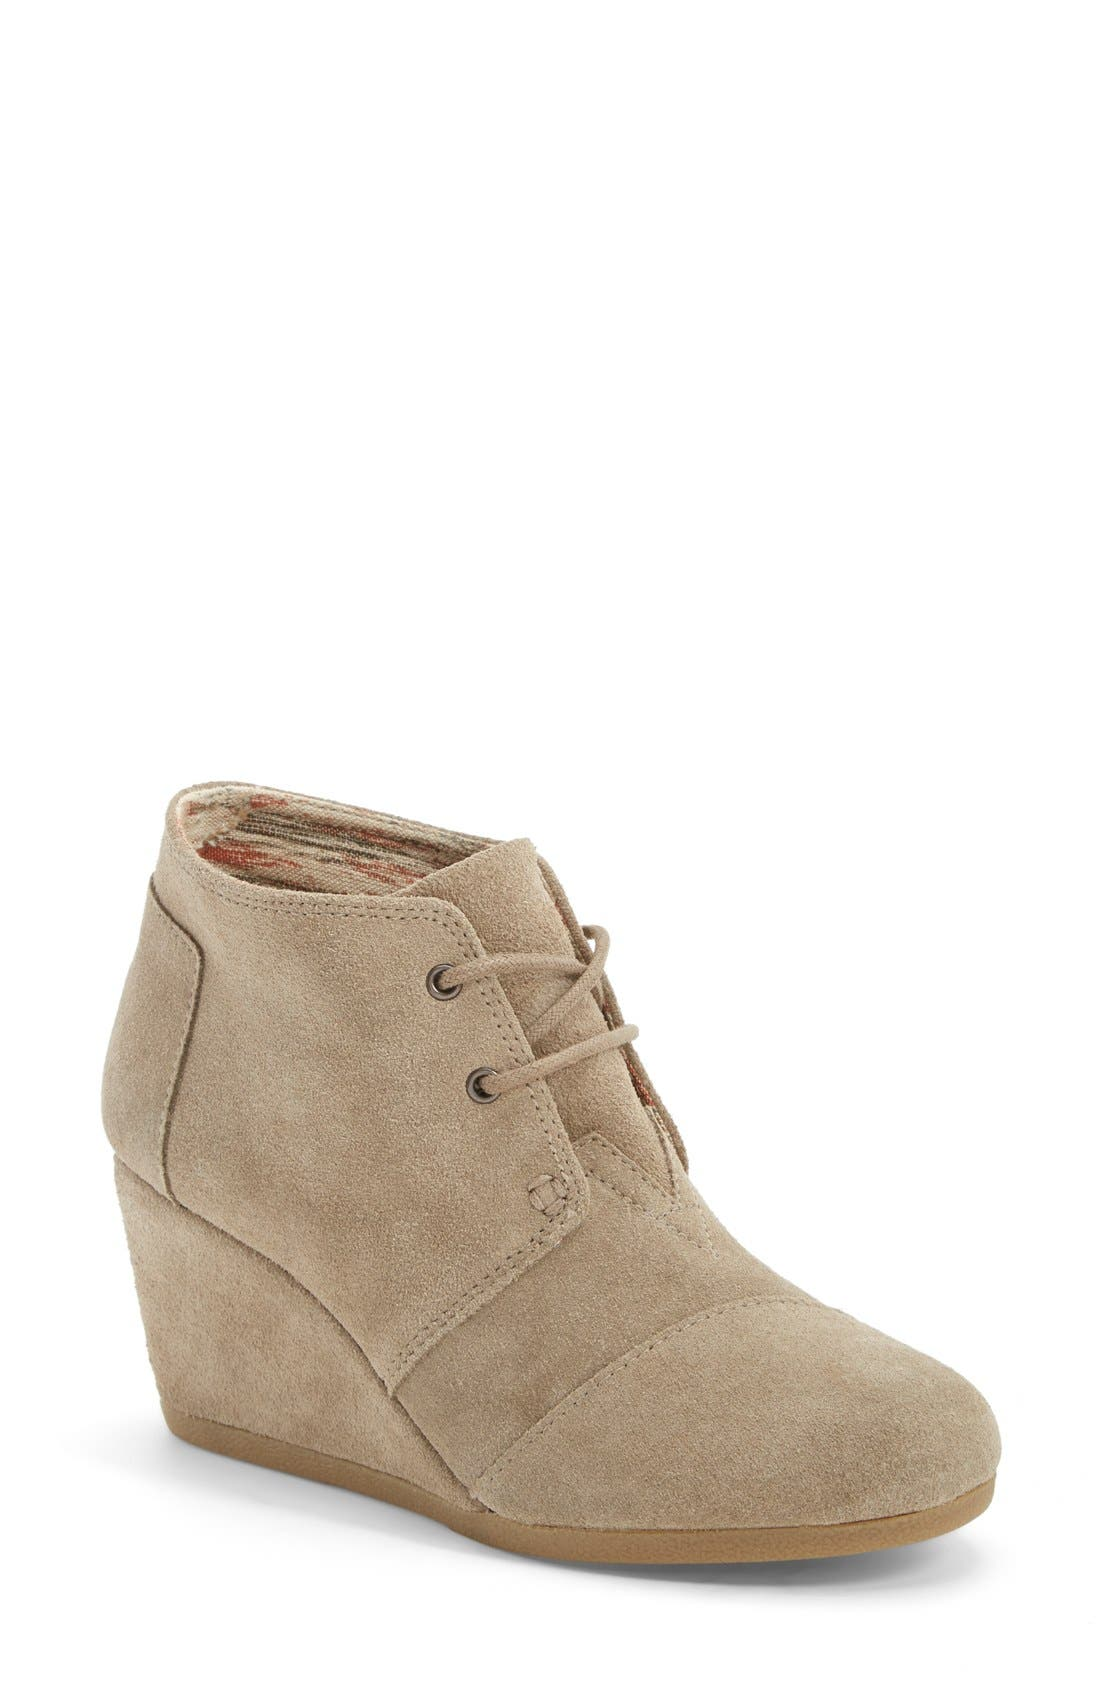 'Desert' Wedge Bootie,                             Main thumbnail 1, color,                             250